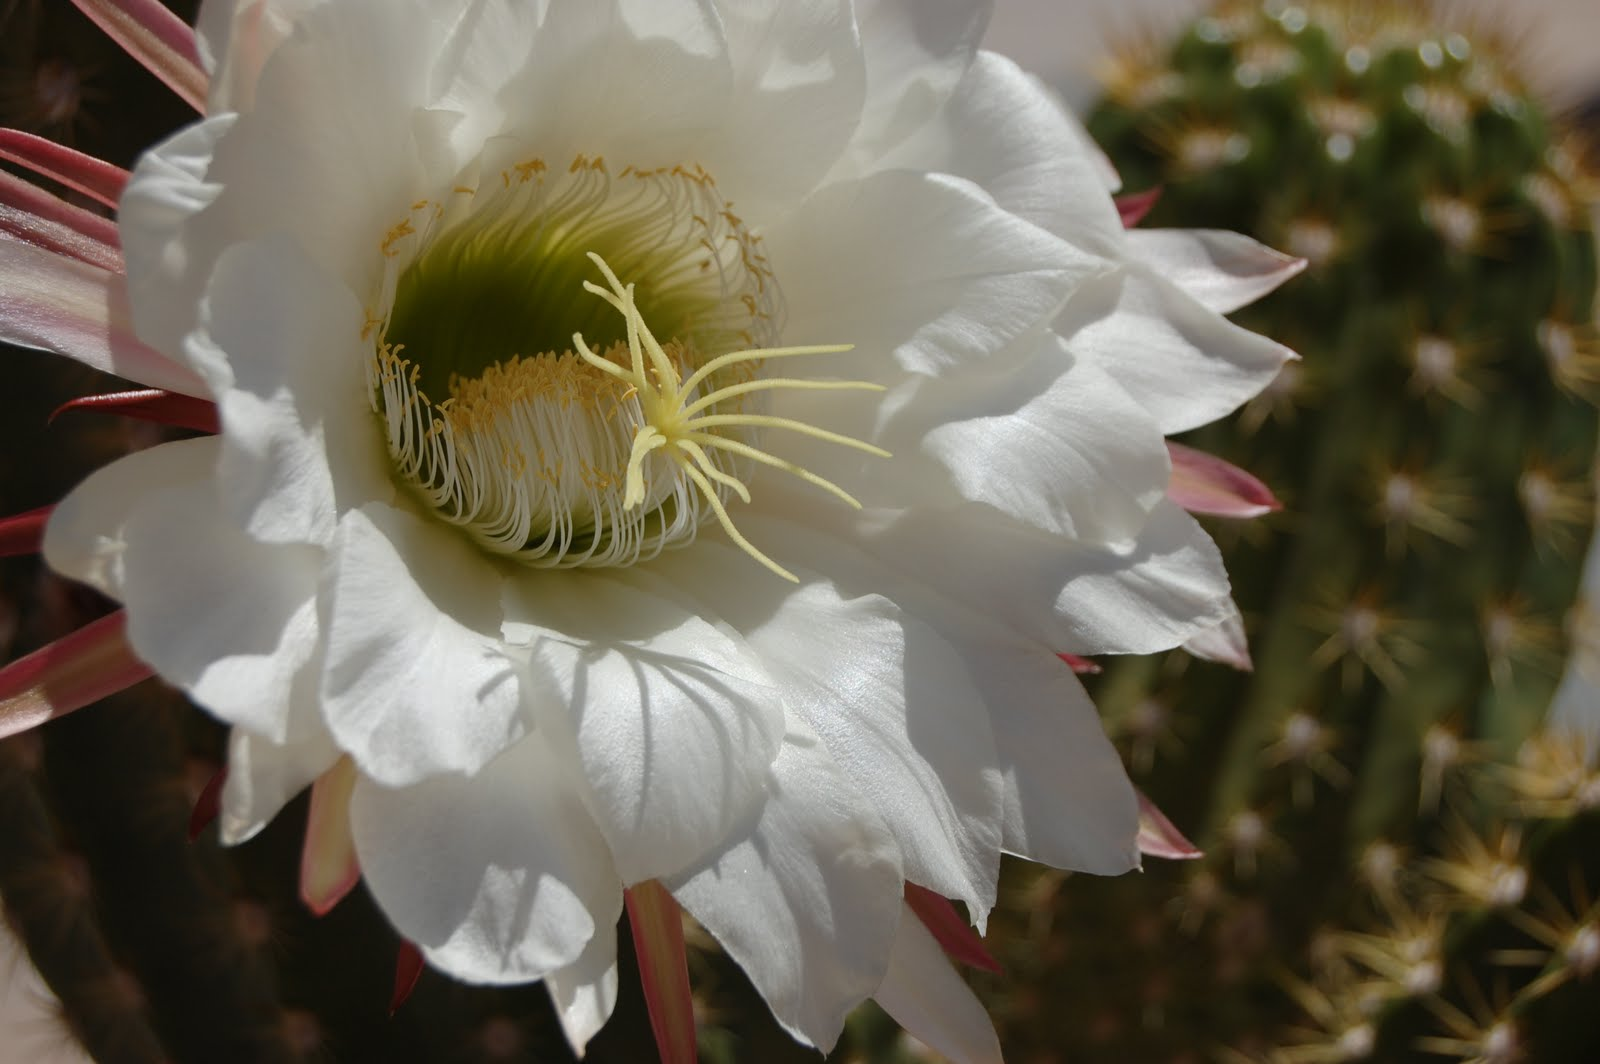 flowers for flower lovers.: White cactus flowers images.